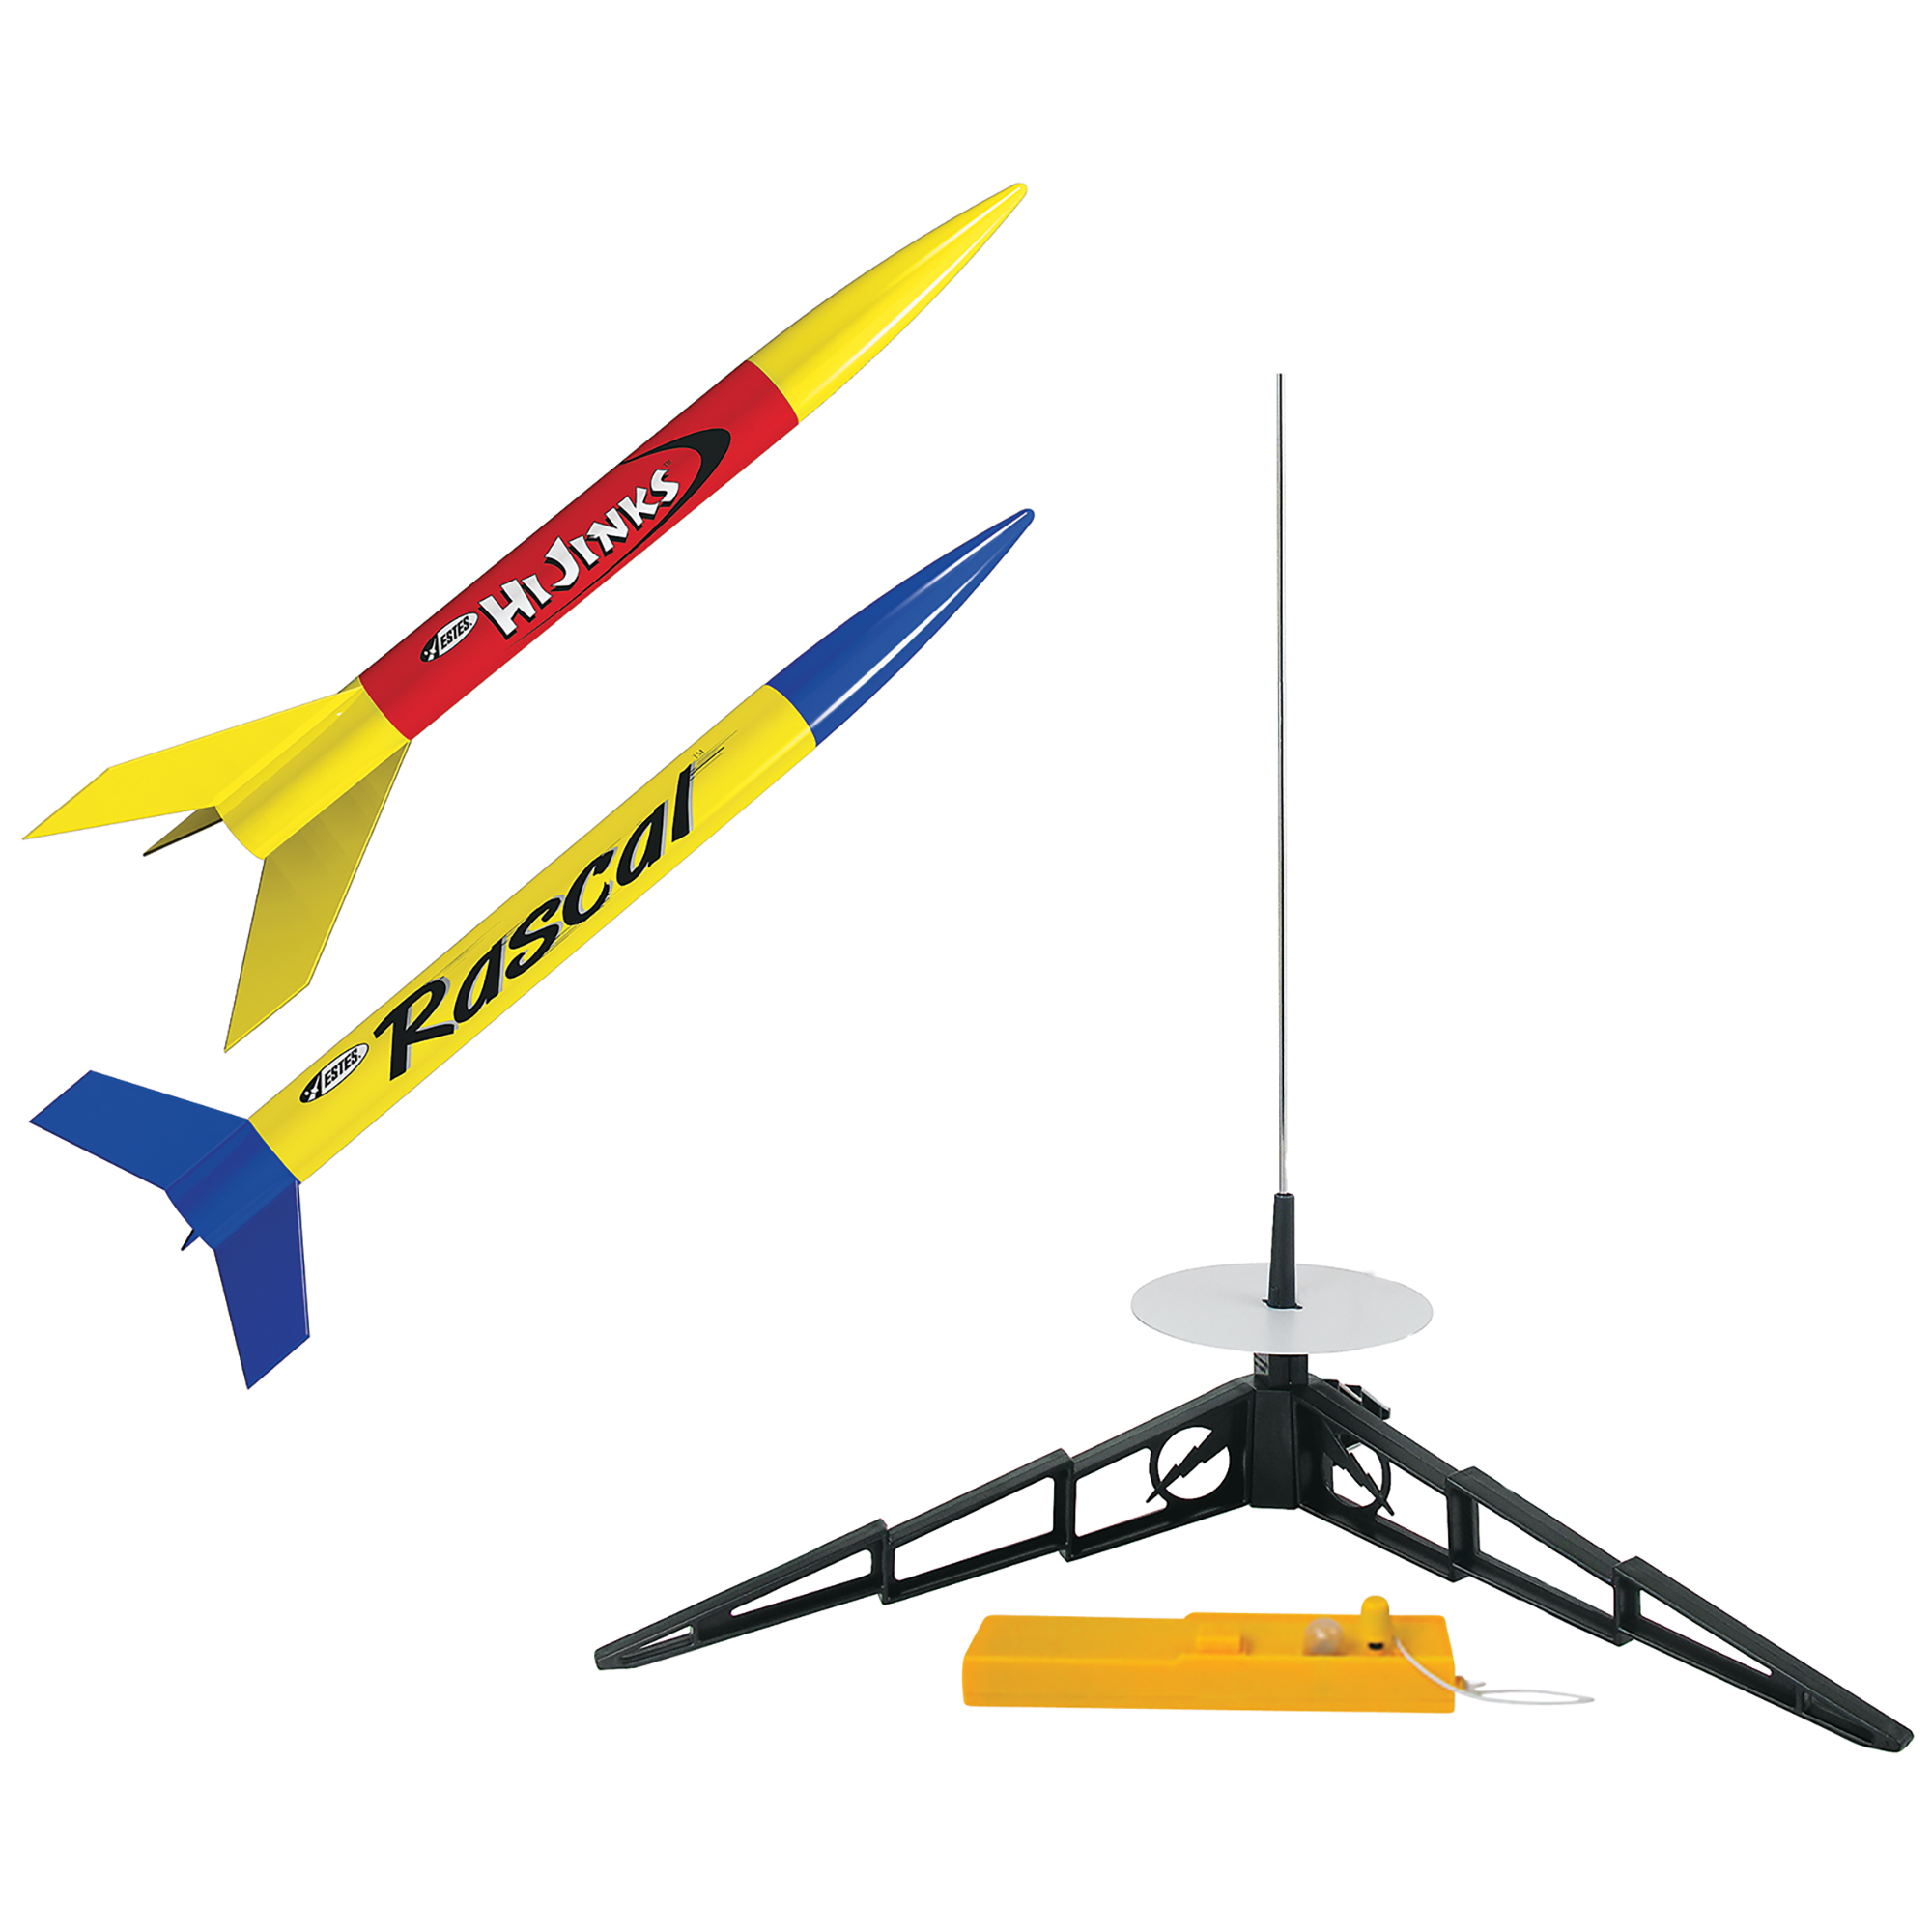 Estes Rascal/HiJinks Flying Model Rocket Launch Set